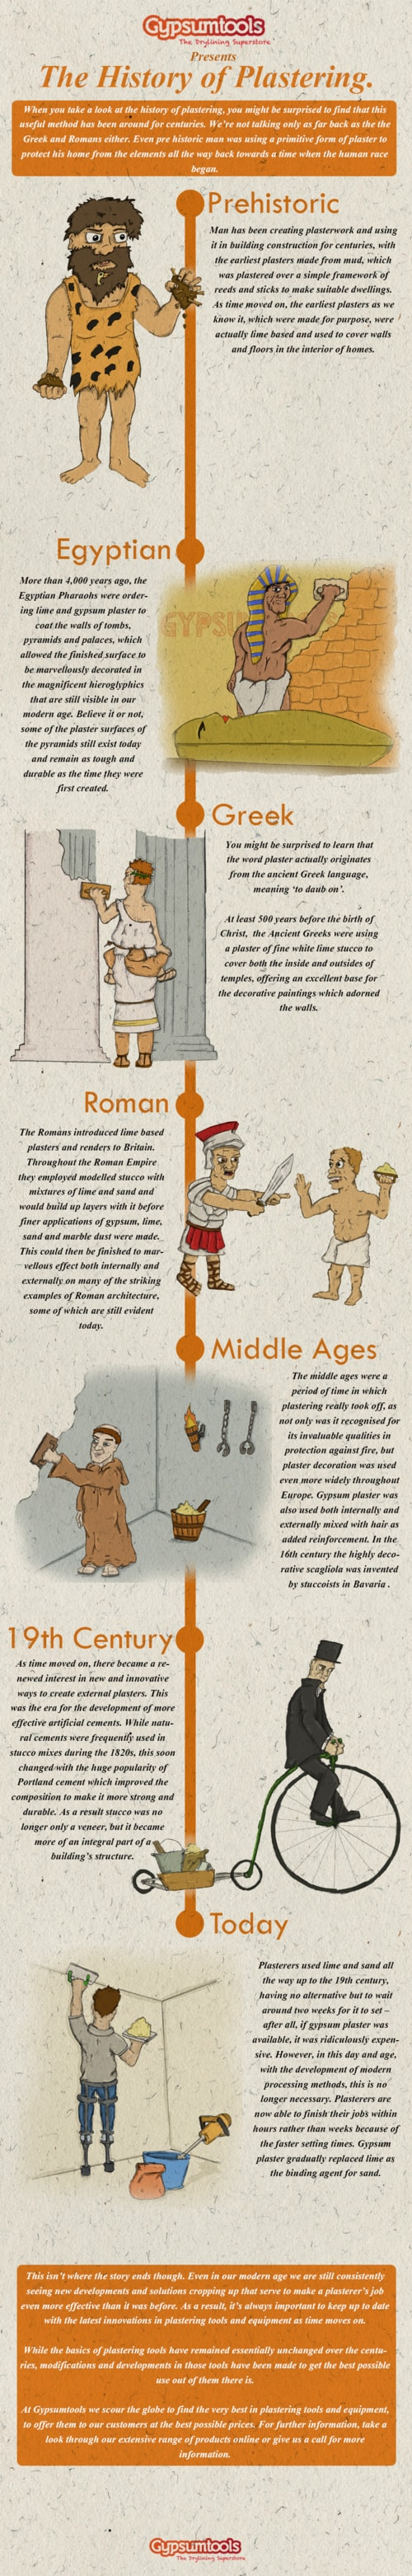 An infographic about the history of plastering                                                                          Via - via David Eaves